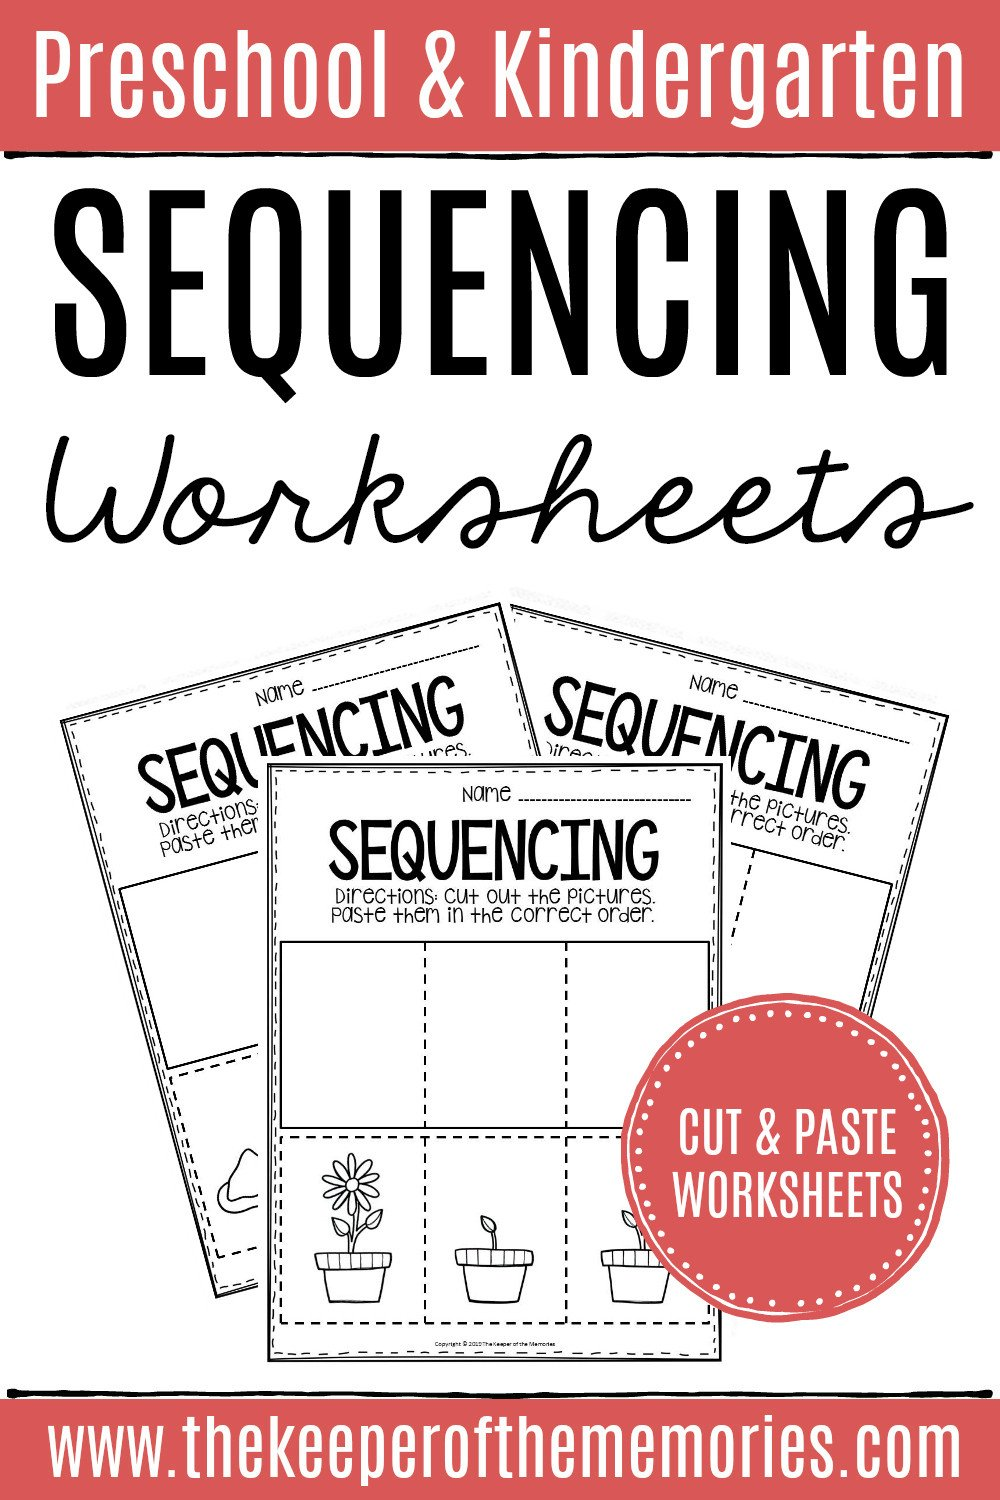 Order Of events Worksheets 3 Step Sequencing Worksheets the Keeper Of the Memories